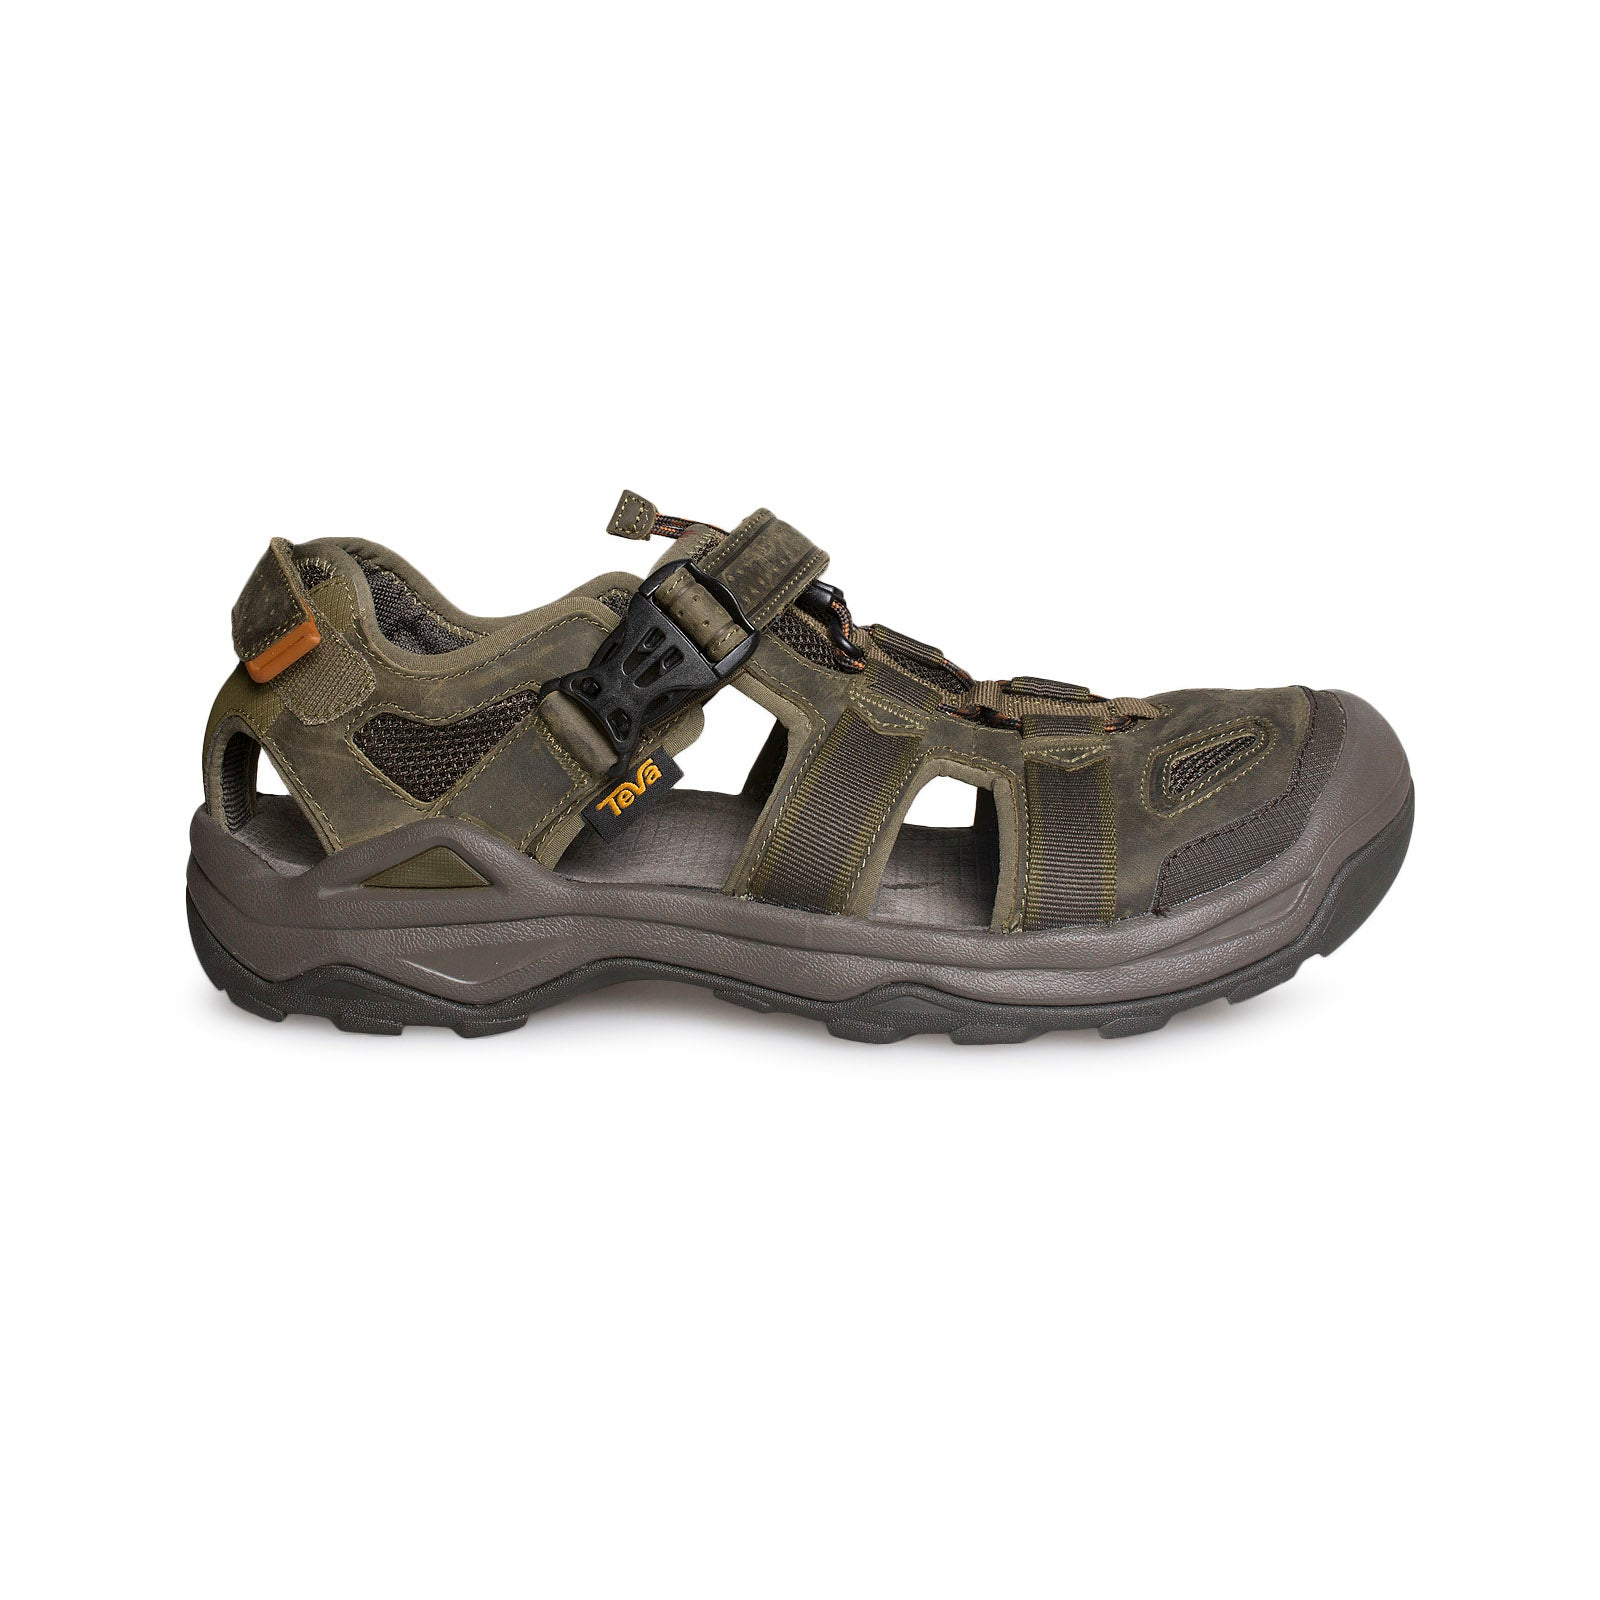 14b99f0e5 Teva Omnium 2 Leather Dark Olive Sandals - Men s - MyCozyBoots